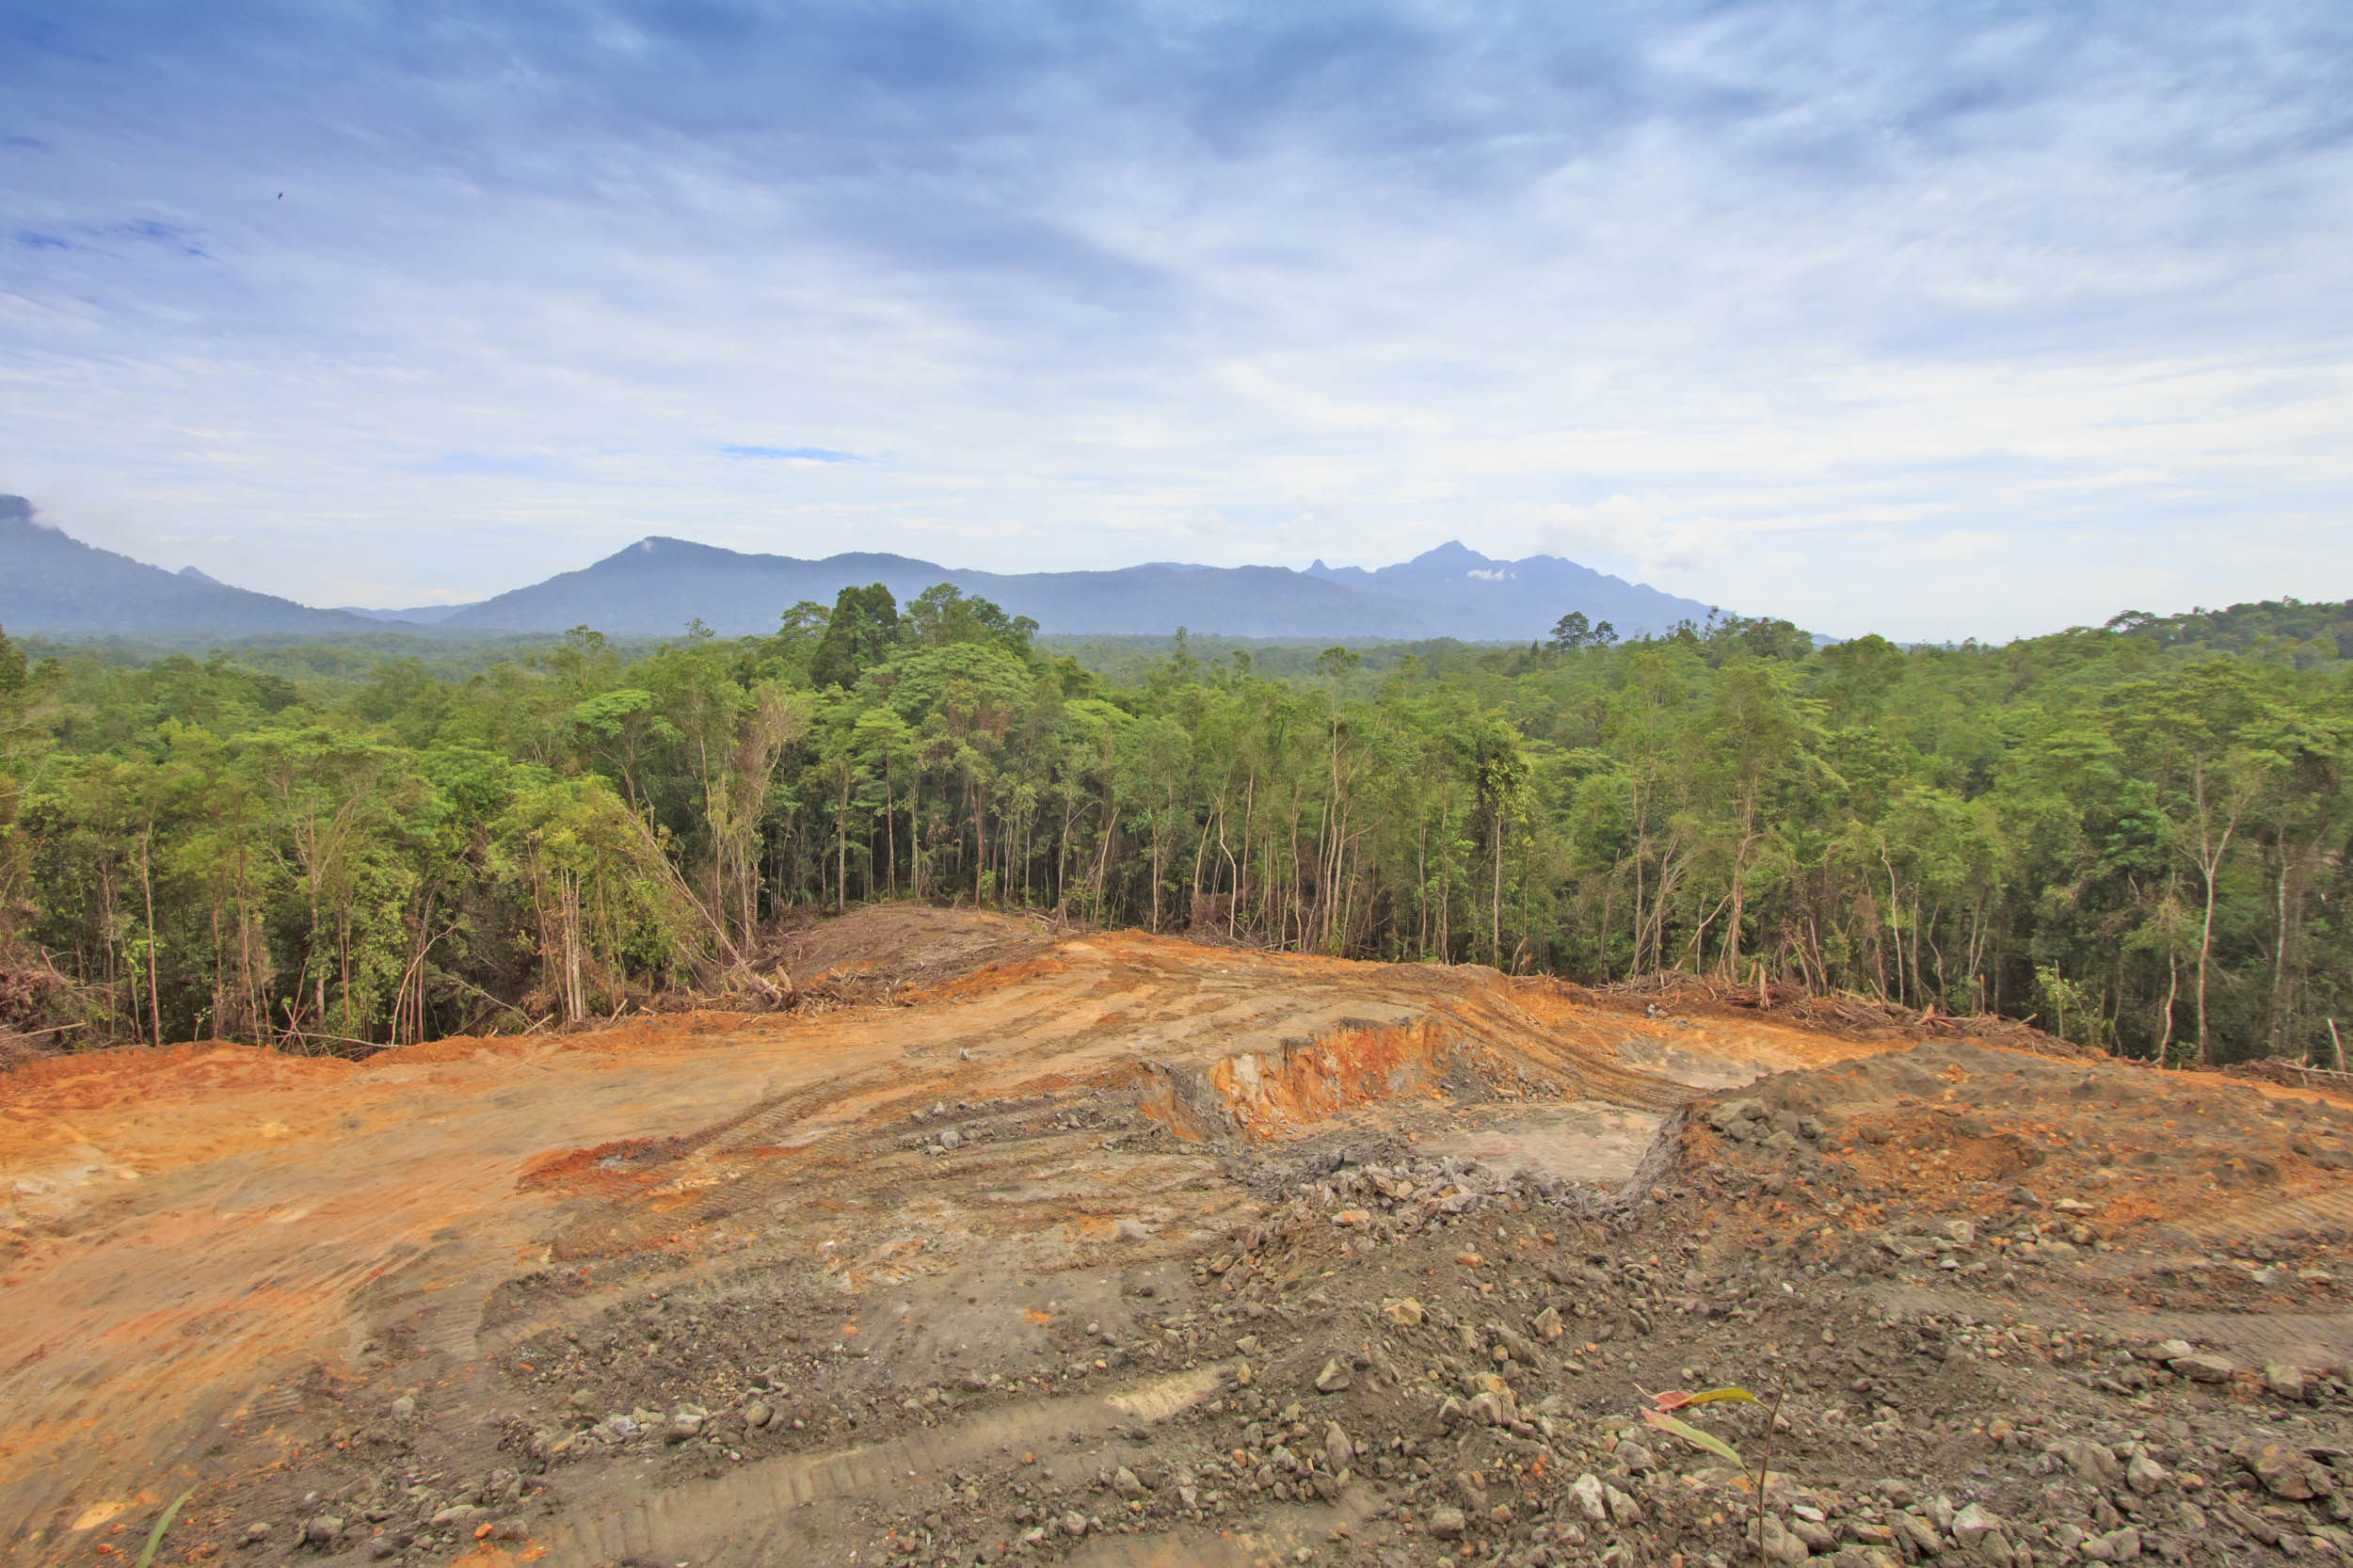 Impacts of tropical deforestation will be felt for many years to come